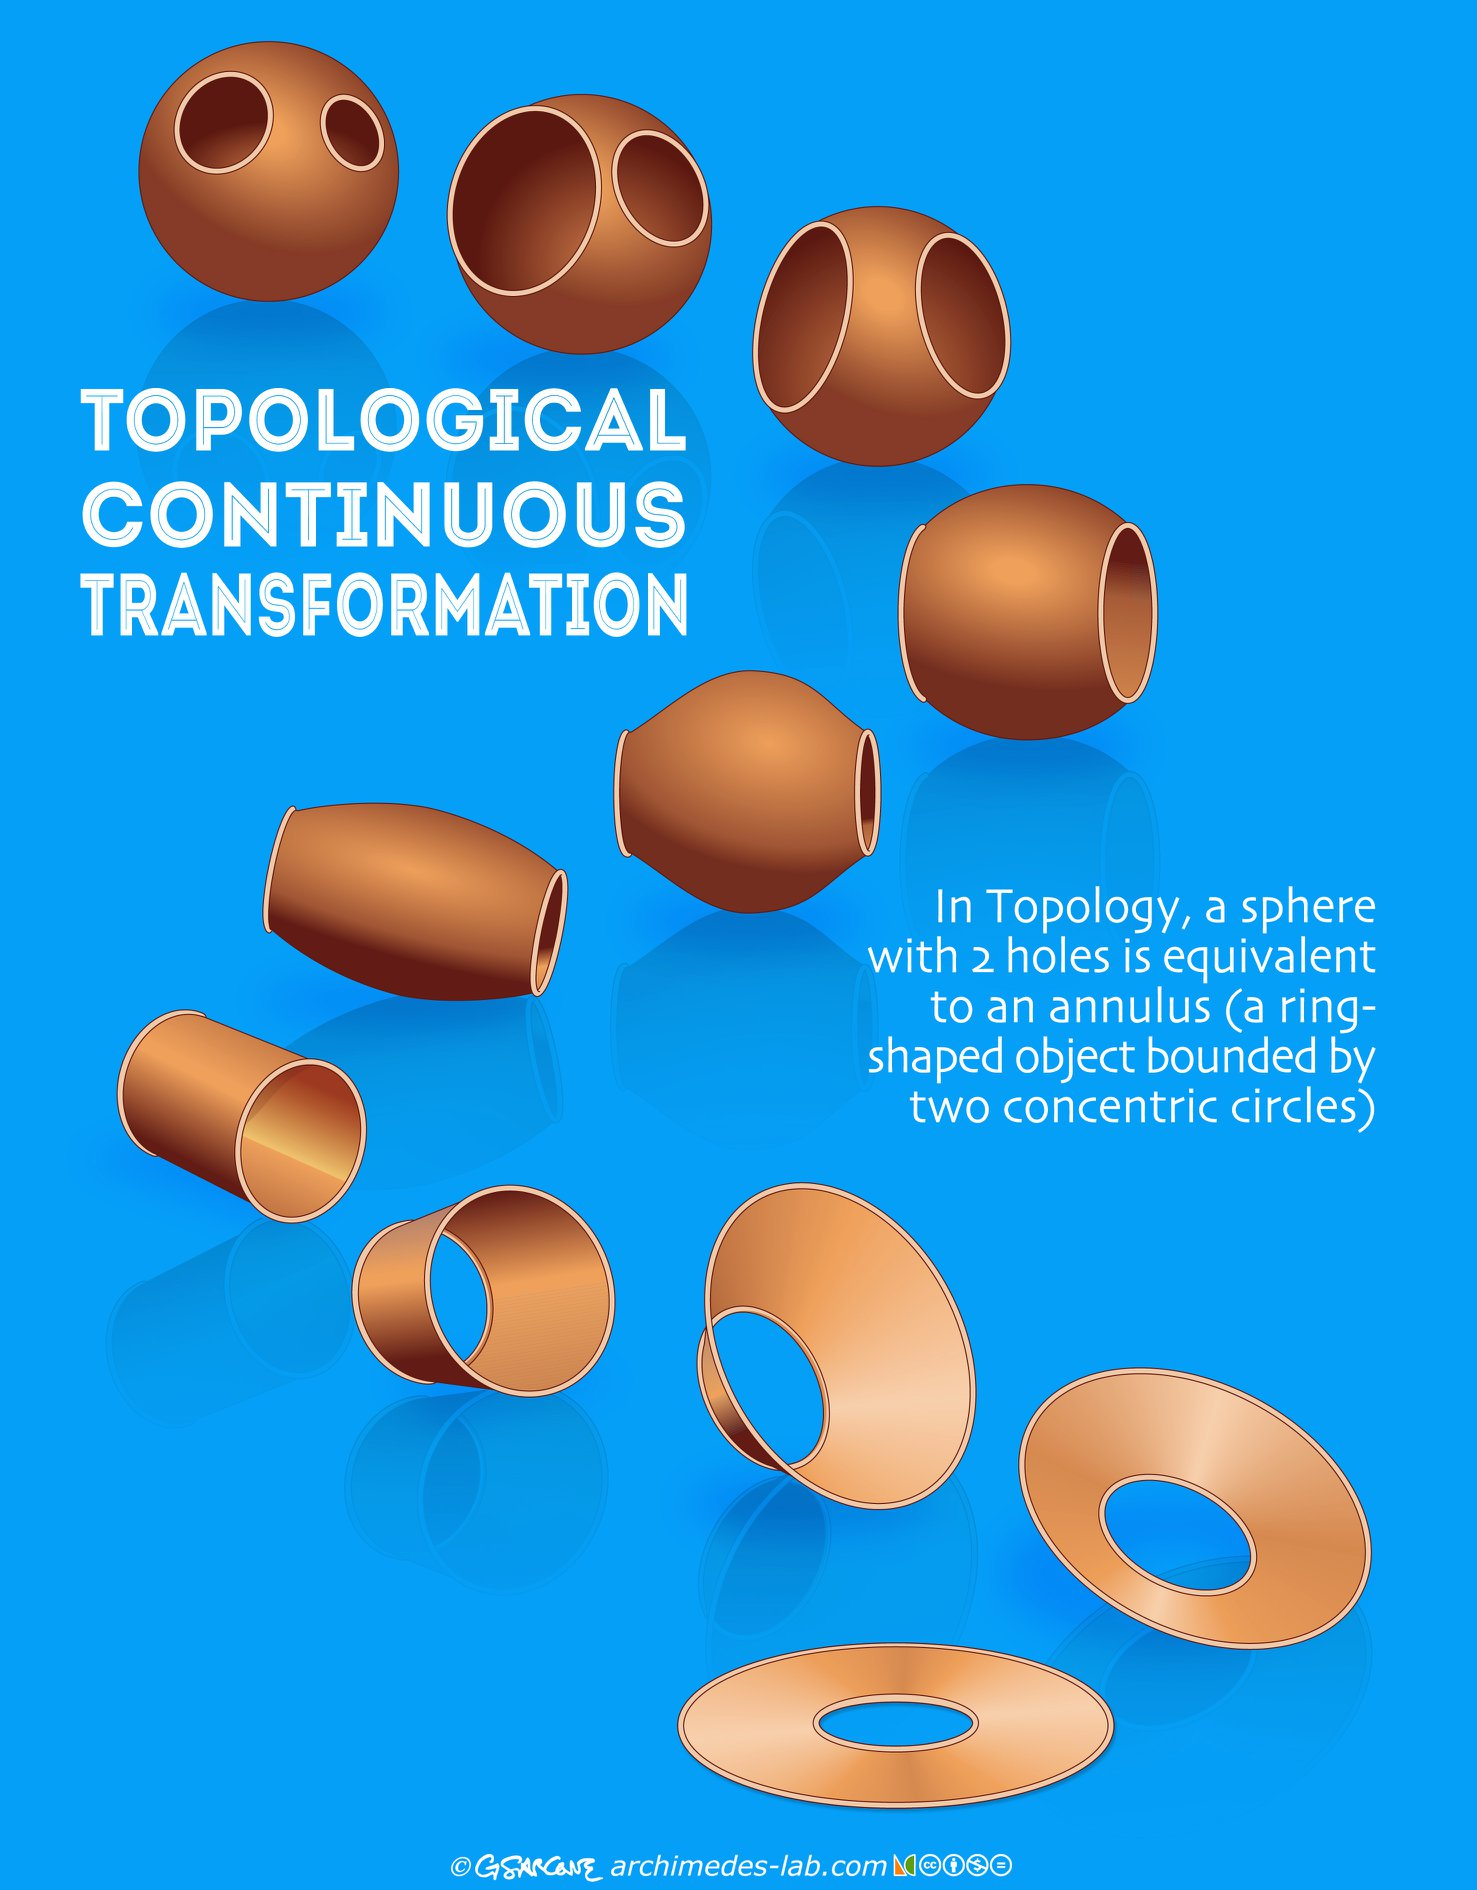 Topological transformation